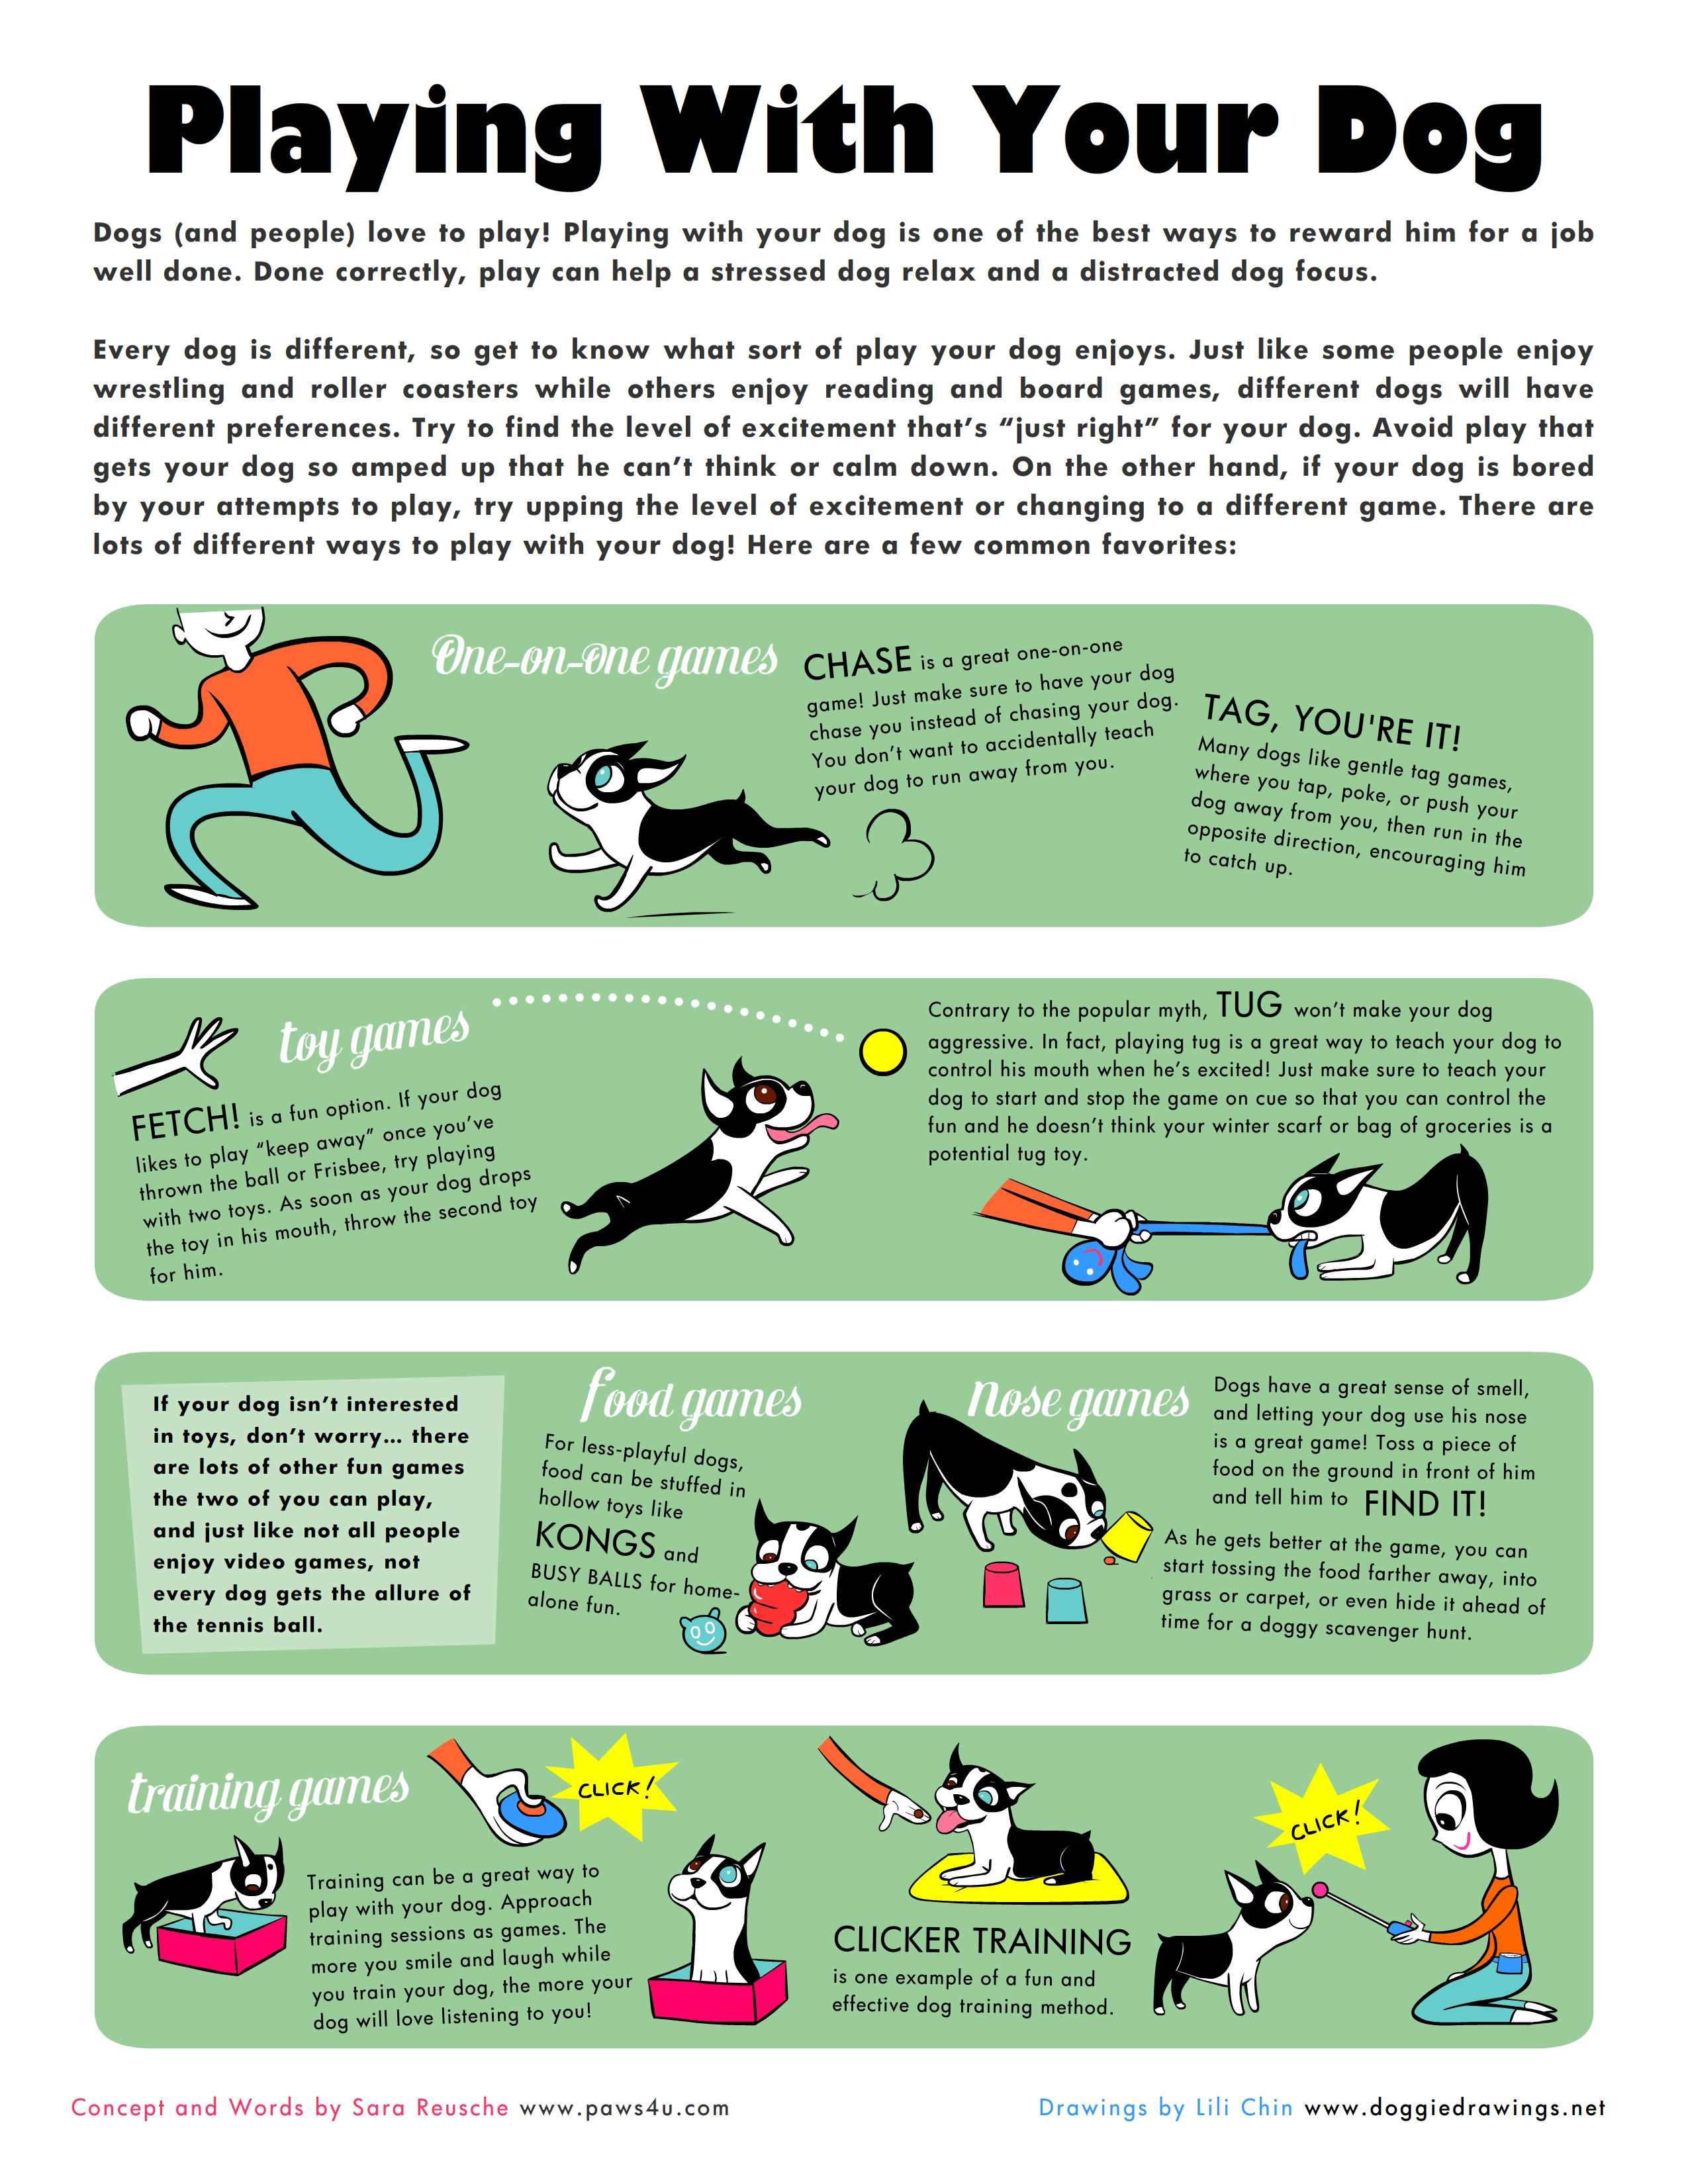 Playing With Your Dog Infographic